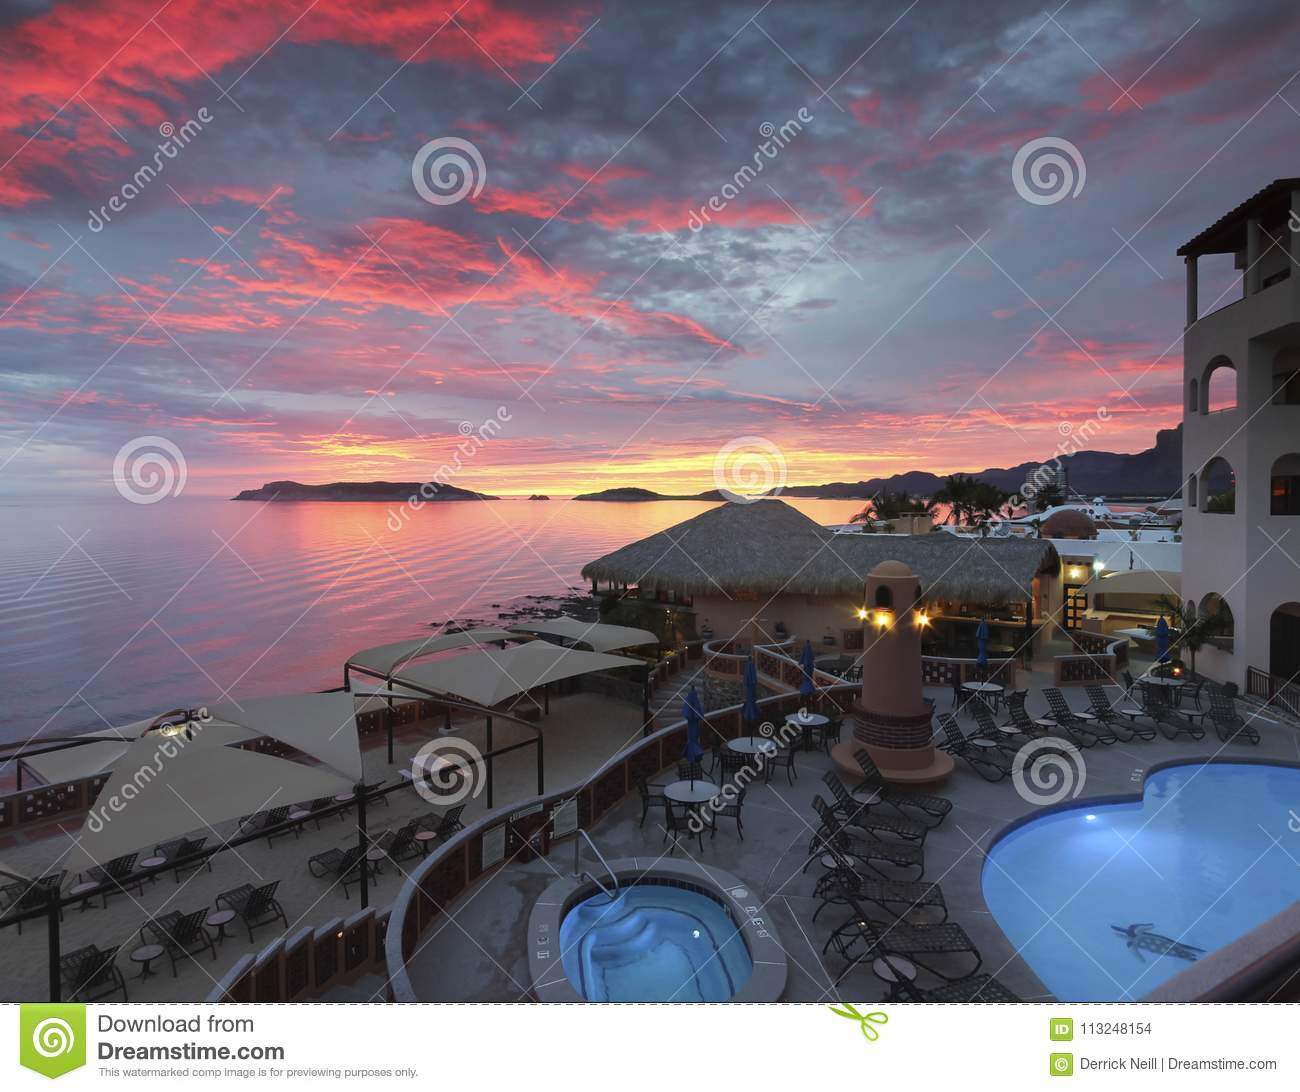 brand new a5e88 a3d9b SAN CARLOS, MEXICO, MARCH 15. The Sea of Cortez Beach Club on March 15,  2018, in San Carlos, Mexico. A Breathtaking Sunset at the Sea of Cortez  Beach Club ...